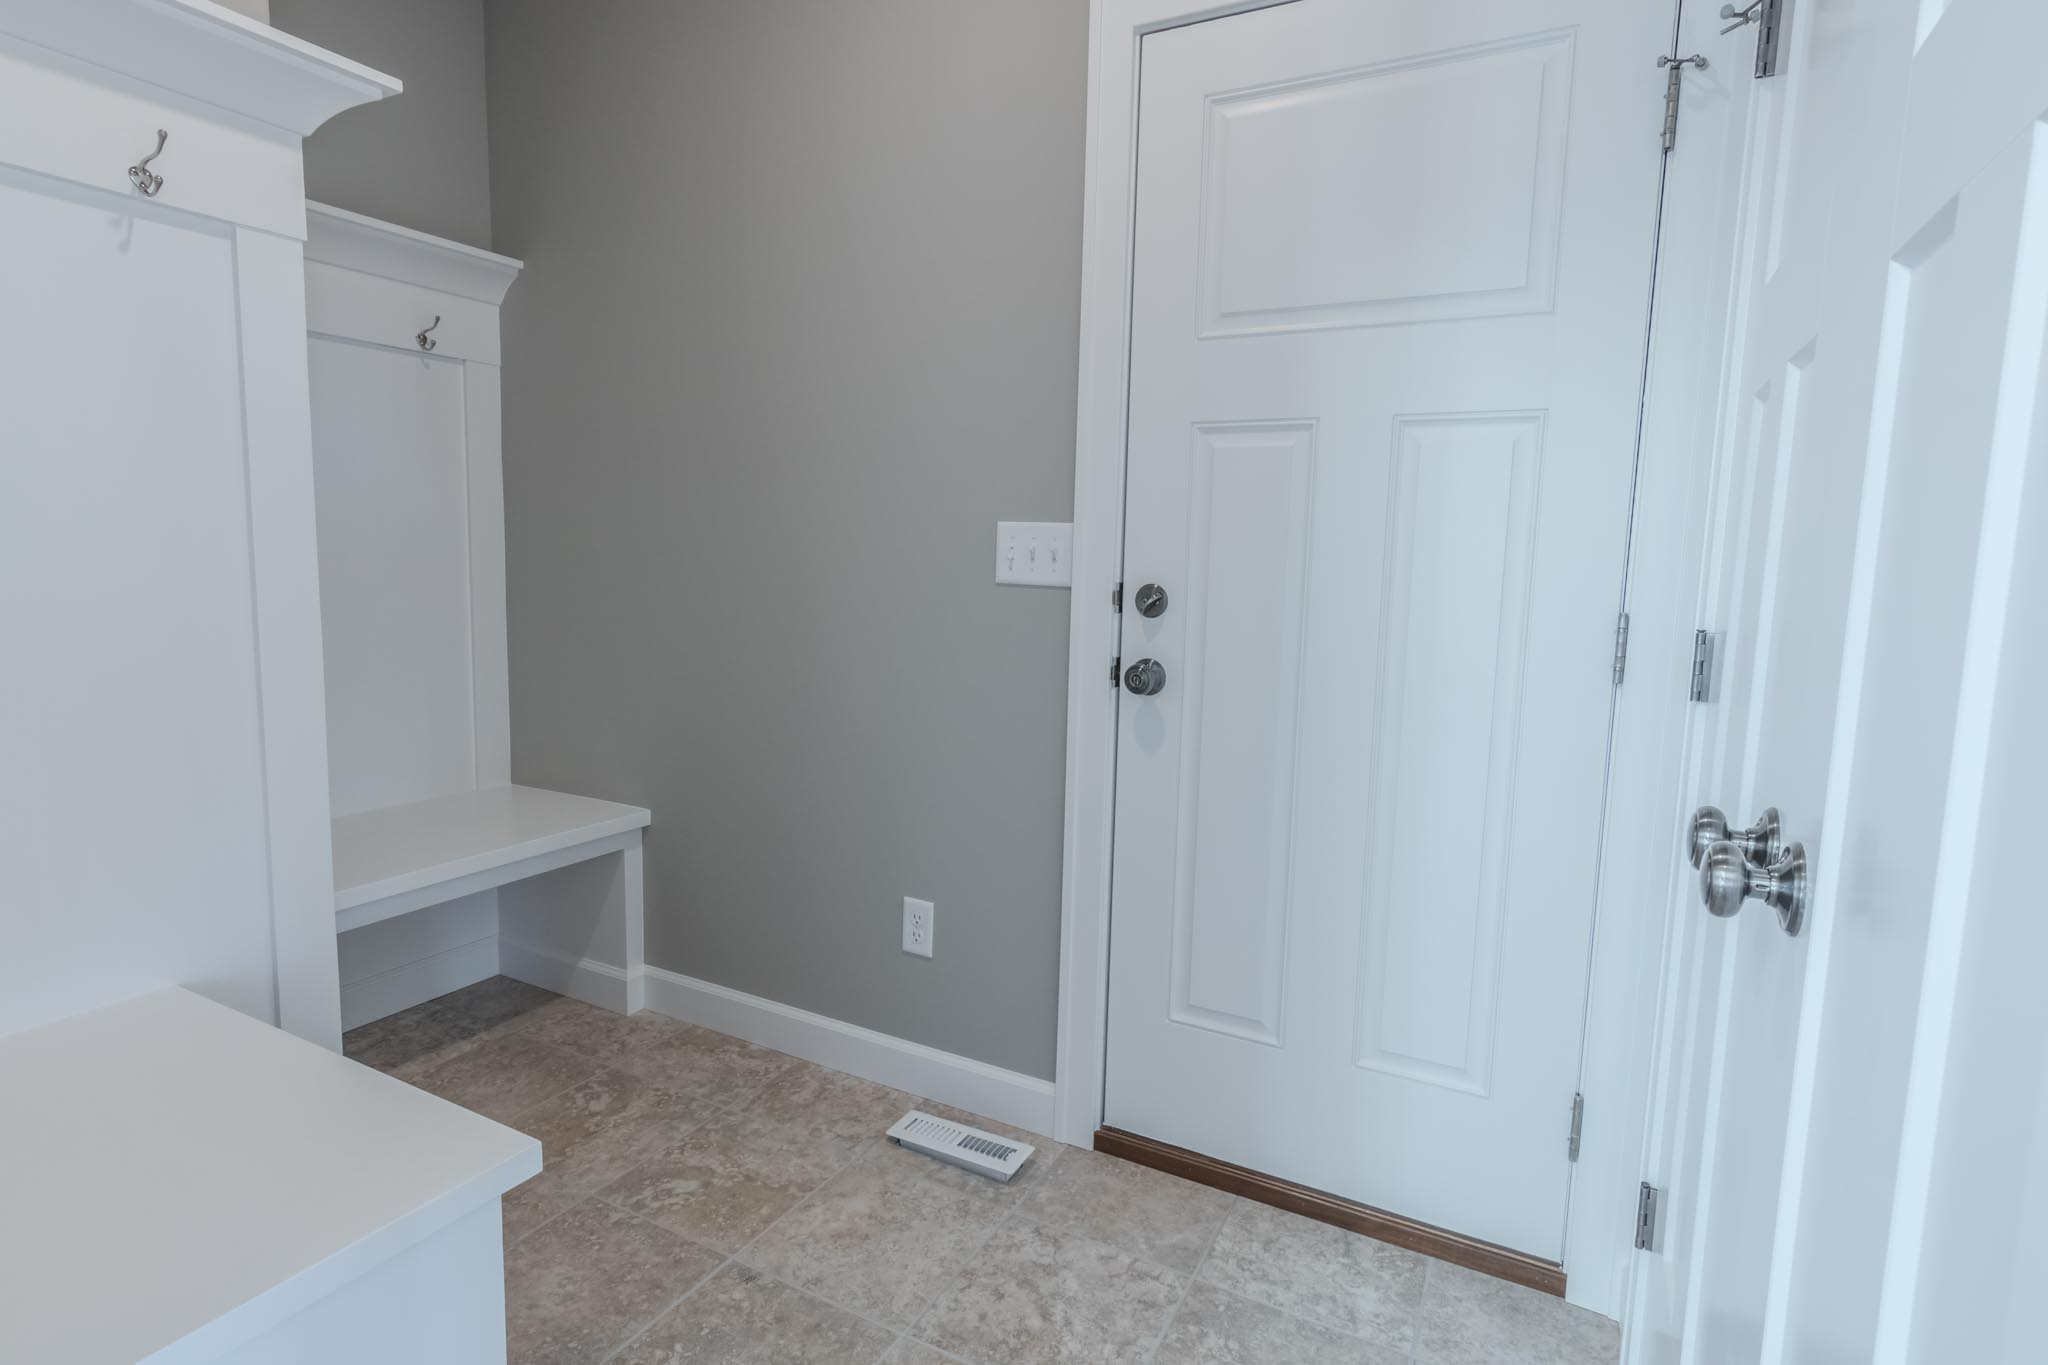 1815 Pfitzer Mud room in Normal IL home for sale